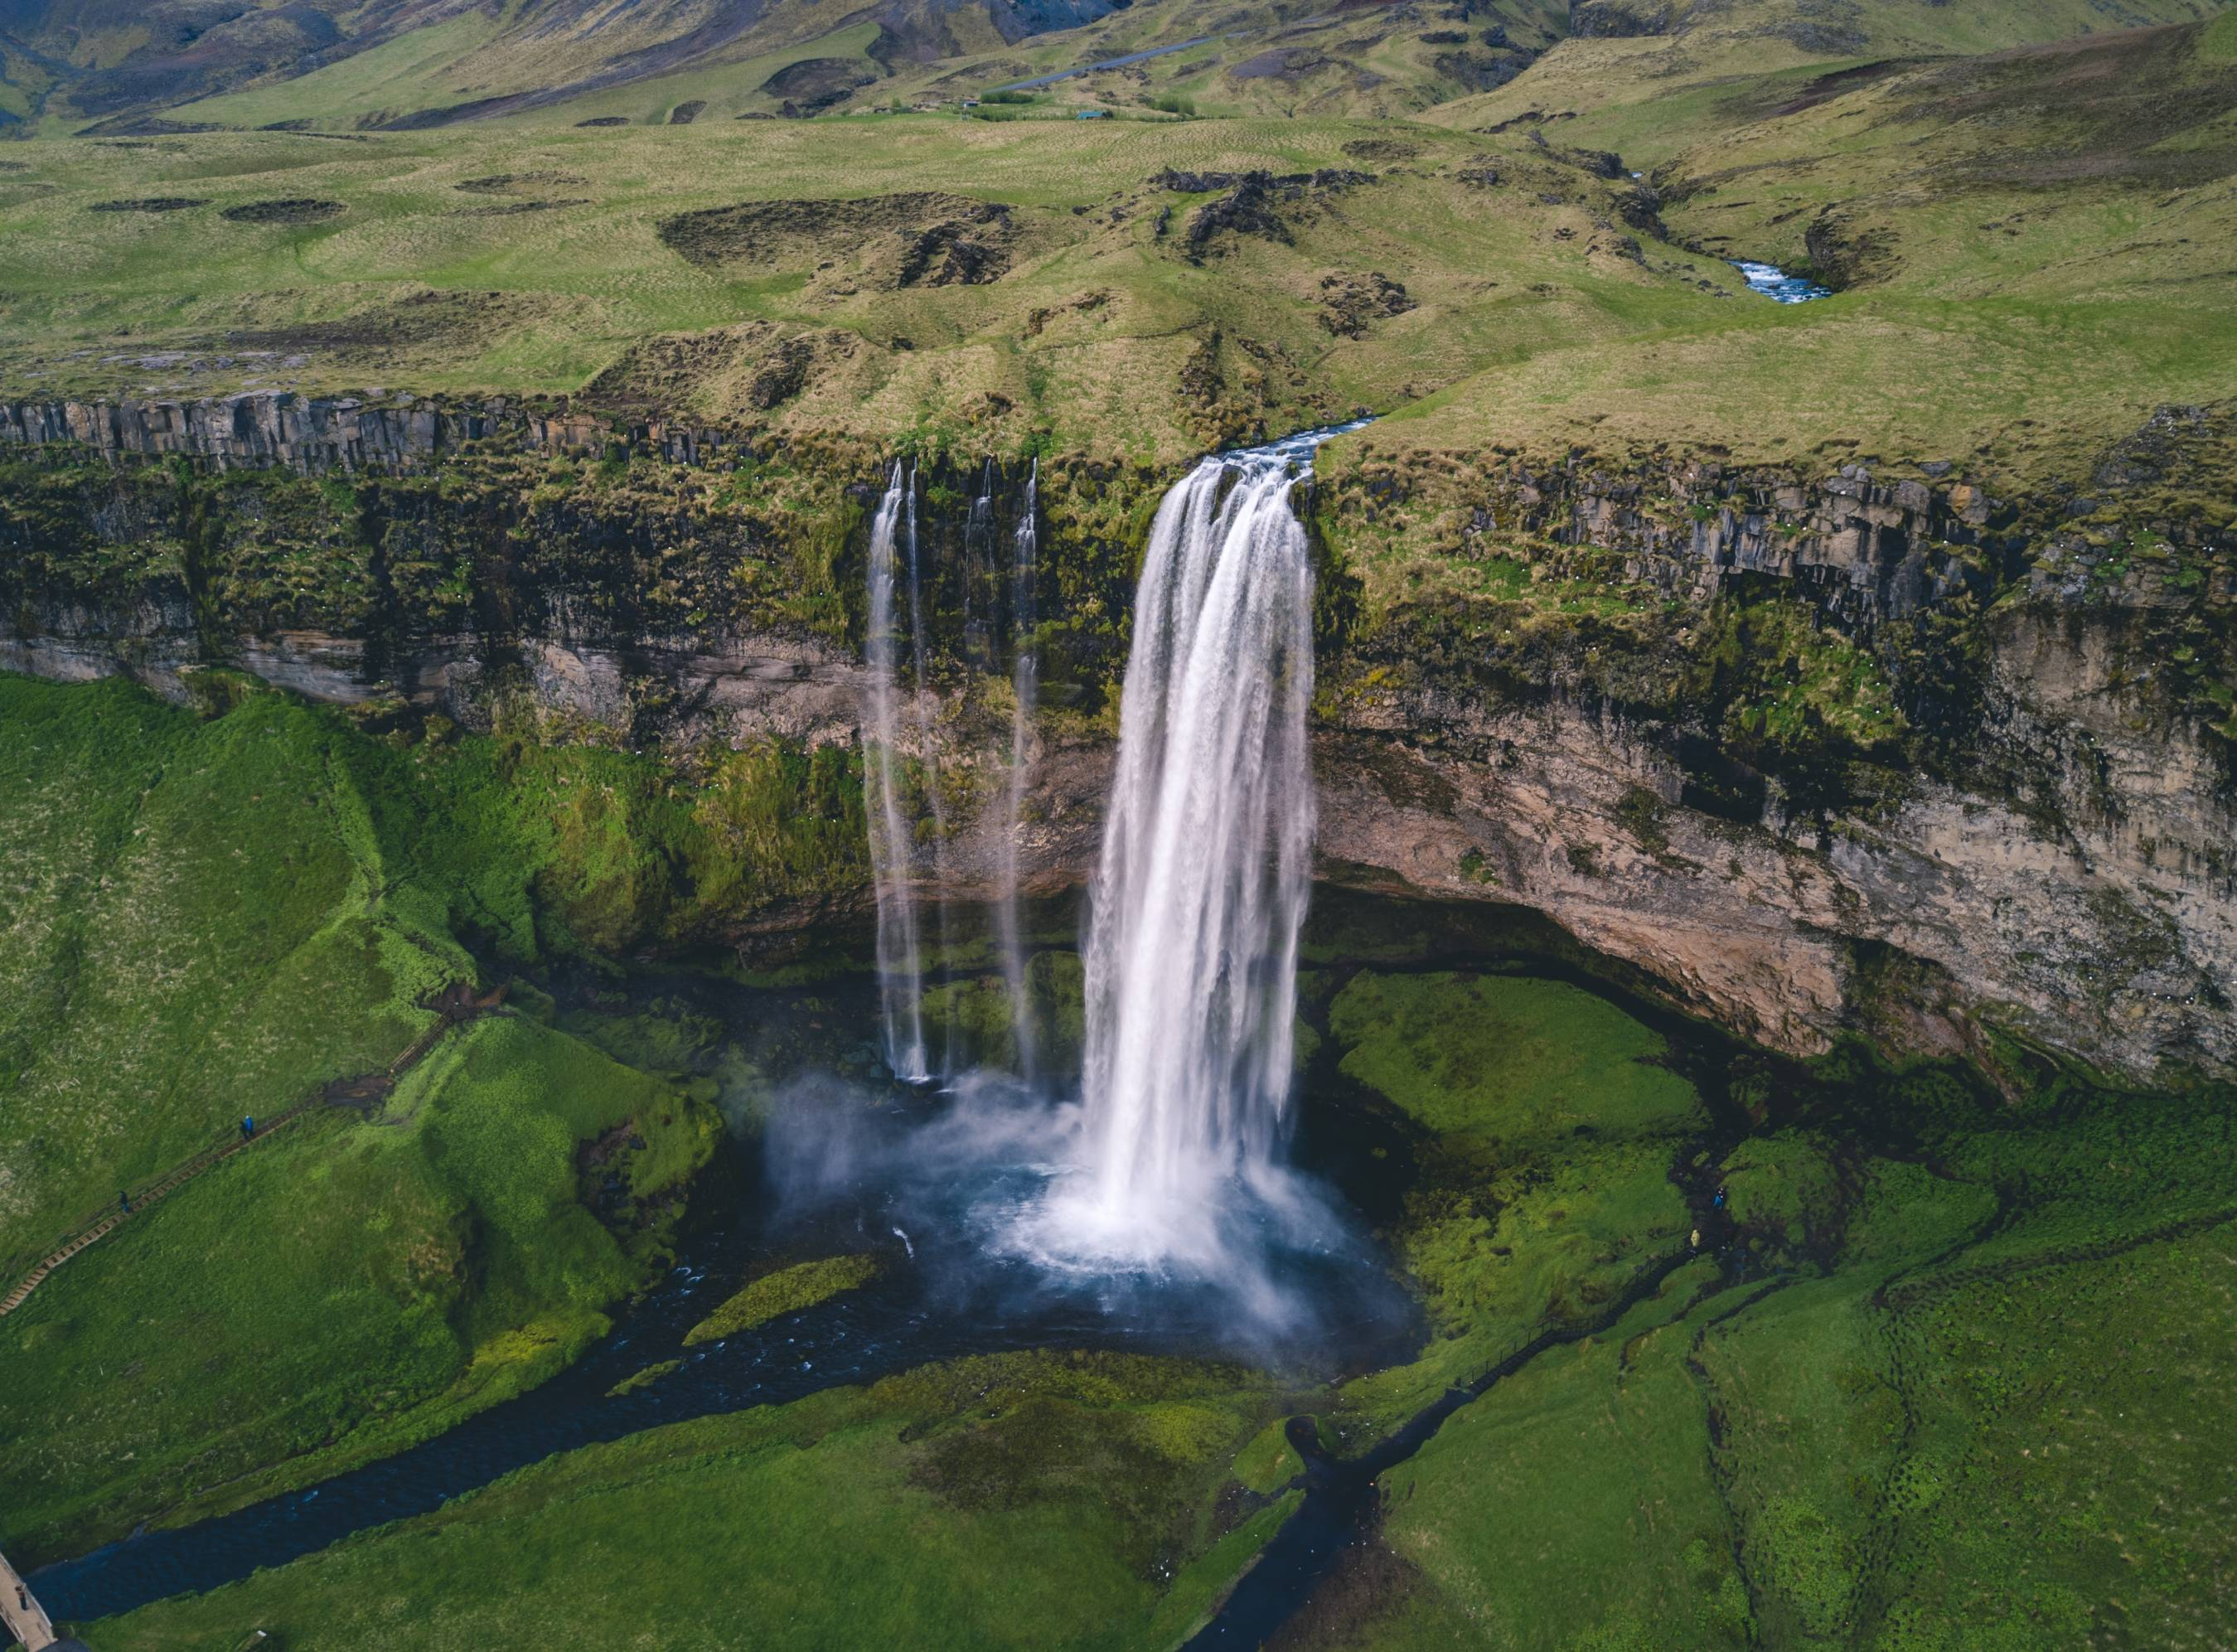 Seljalandsfoss-waterfall-seen-from-a-drone-above-on-a-summer-day-surrounded-by-green-grass